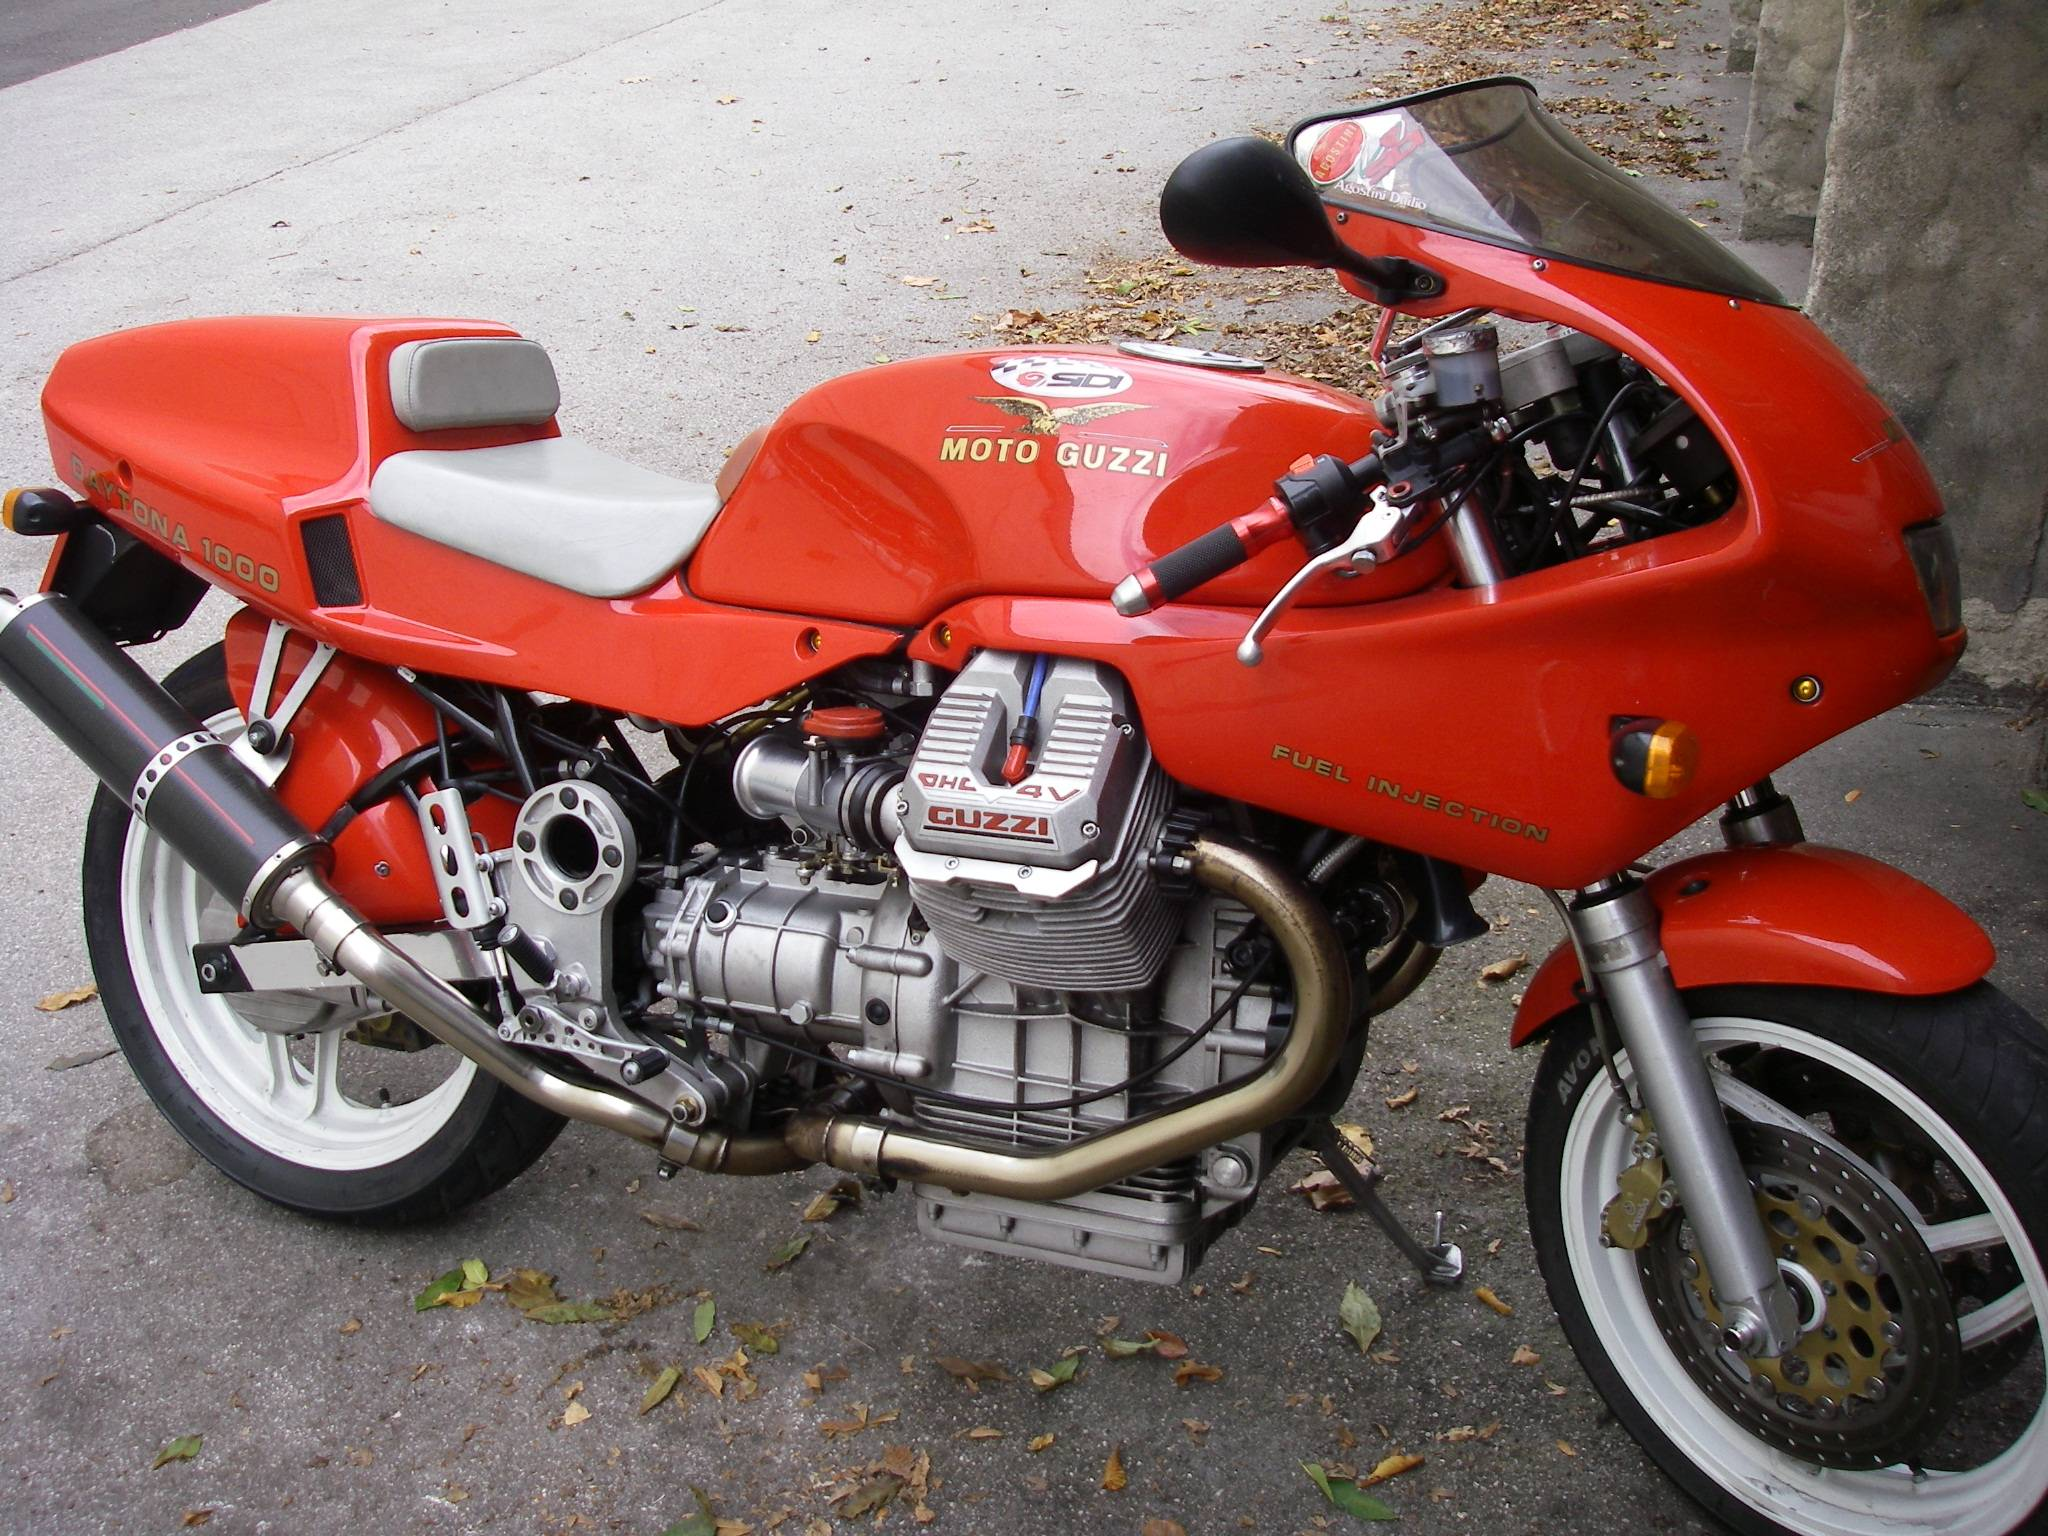 Moto Guzzi Quota 1000 images #109291